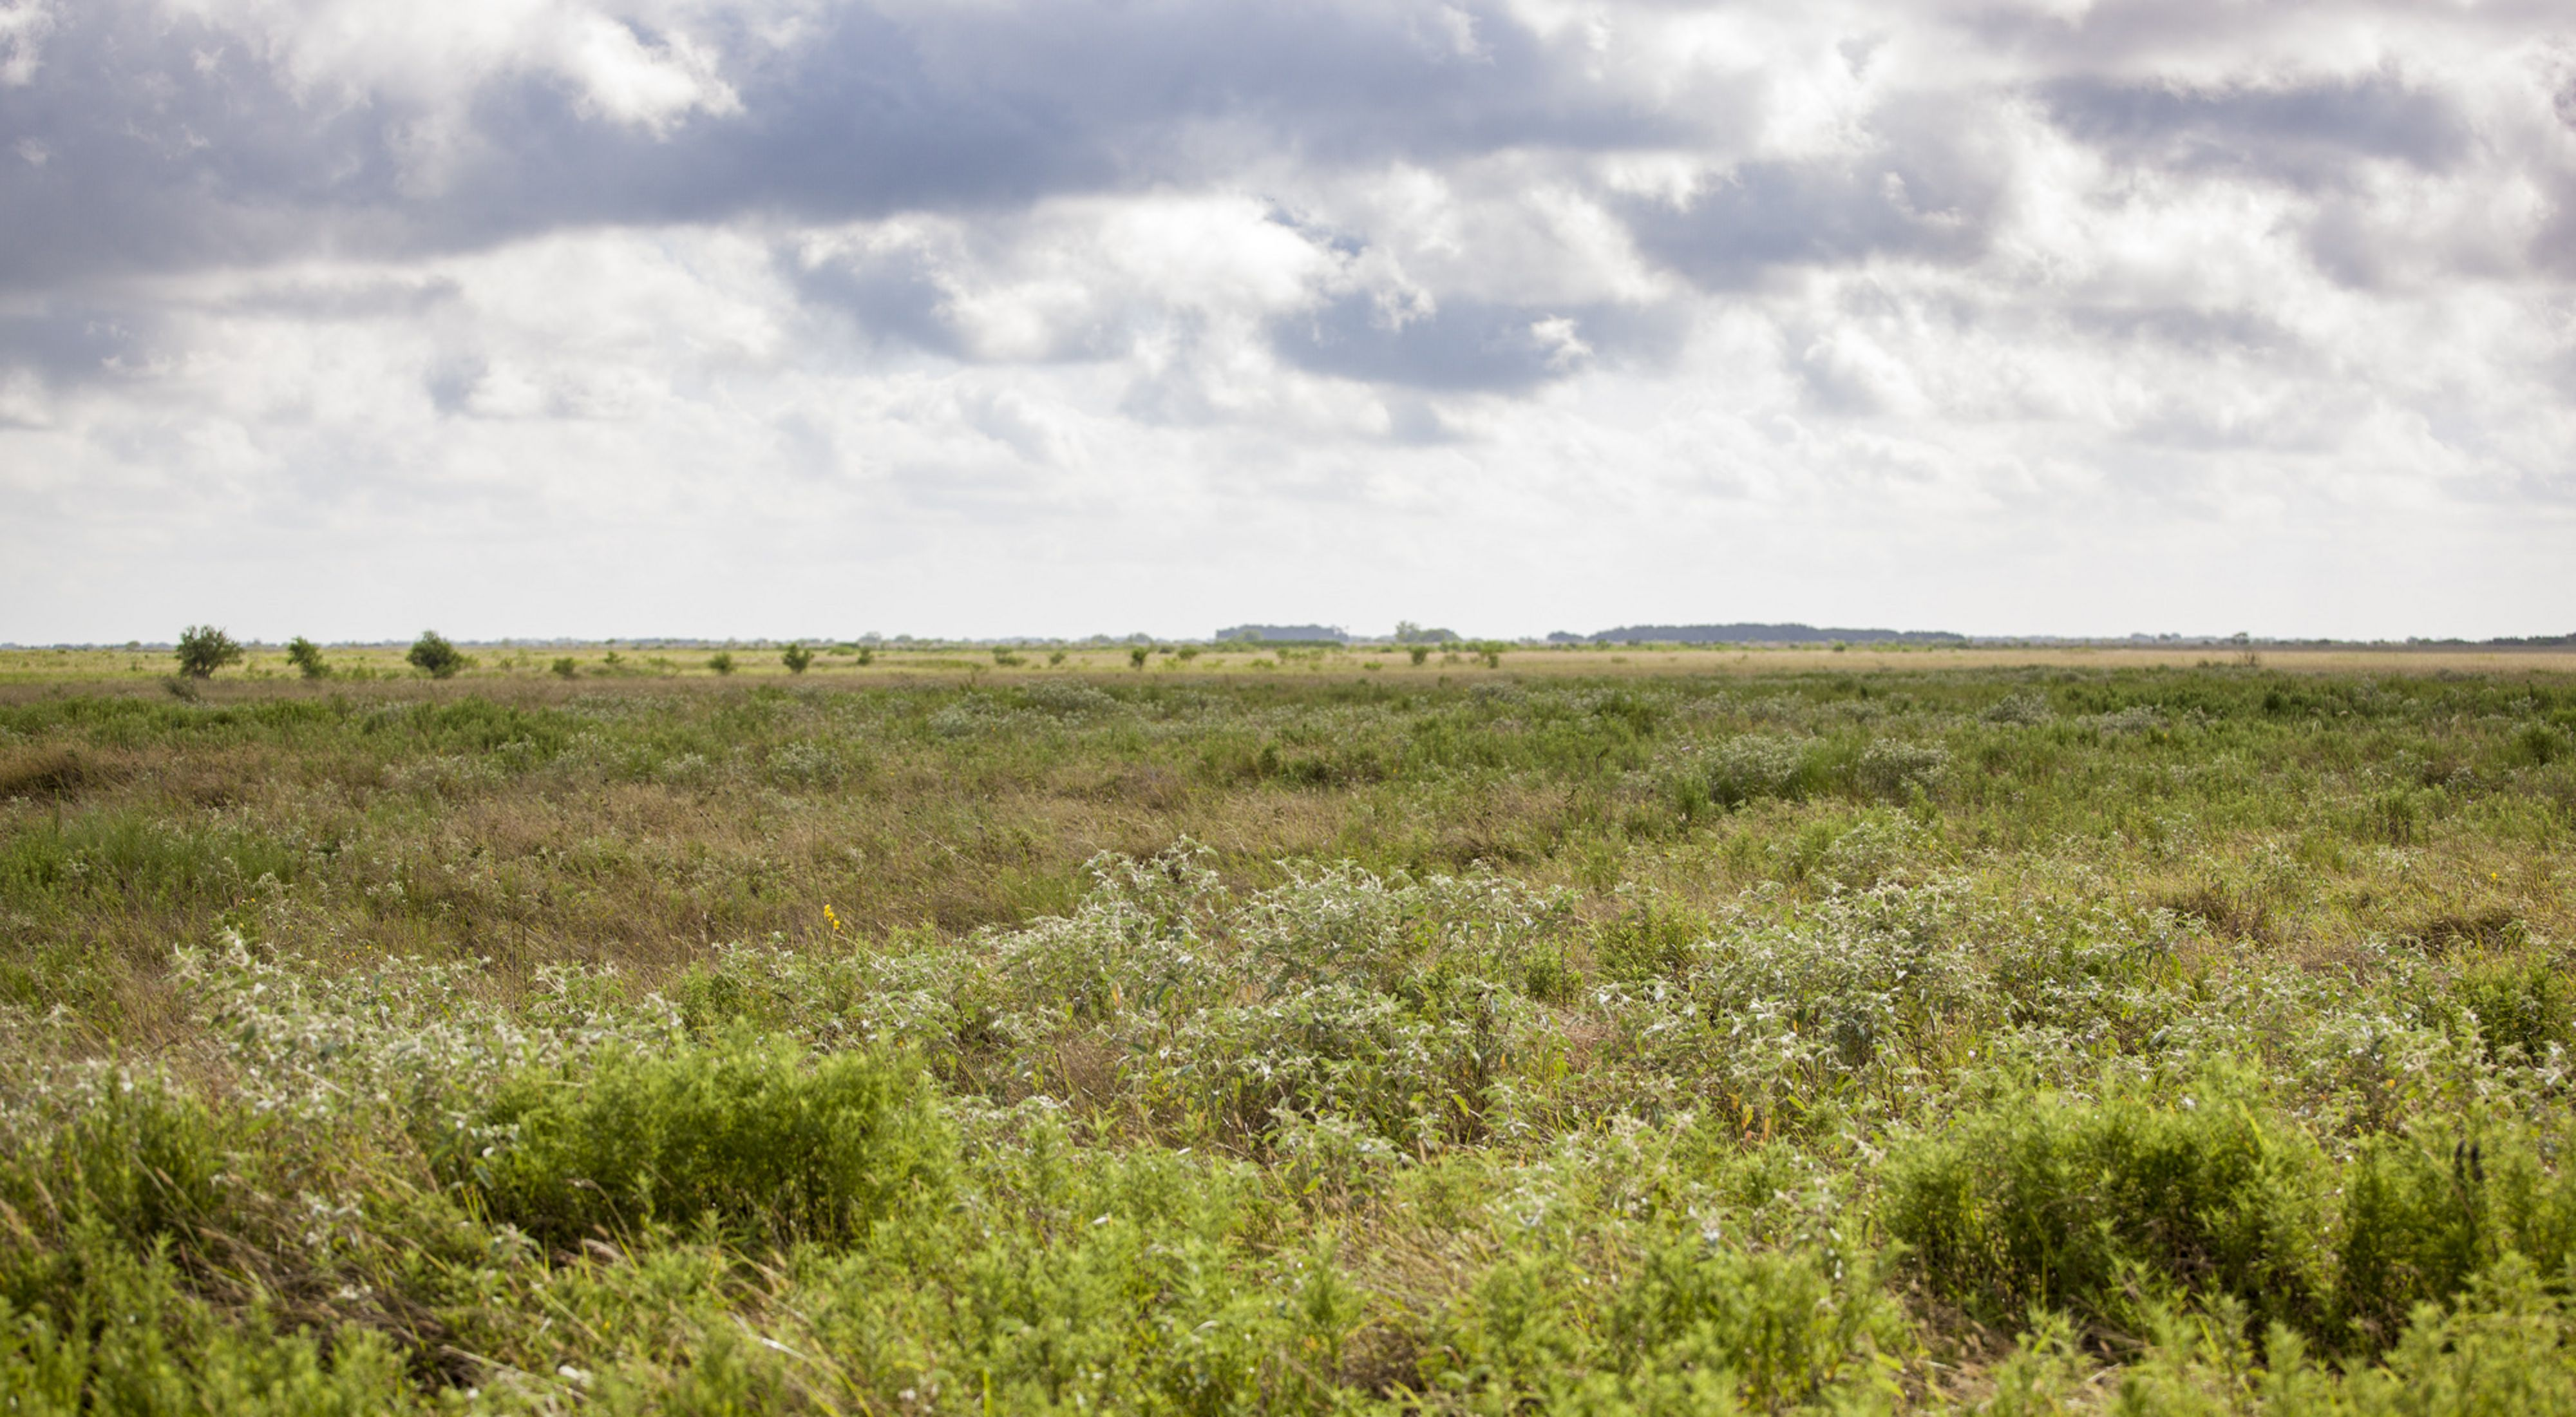 The Refugio-Goliad Project contains one of the highest-quality expanses of native coastal tallgrass prairie in Texas.